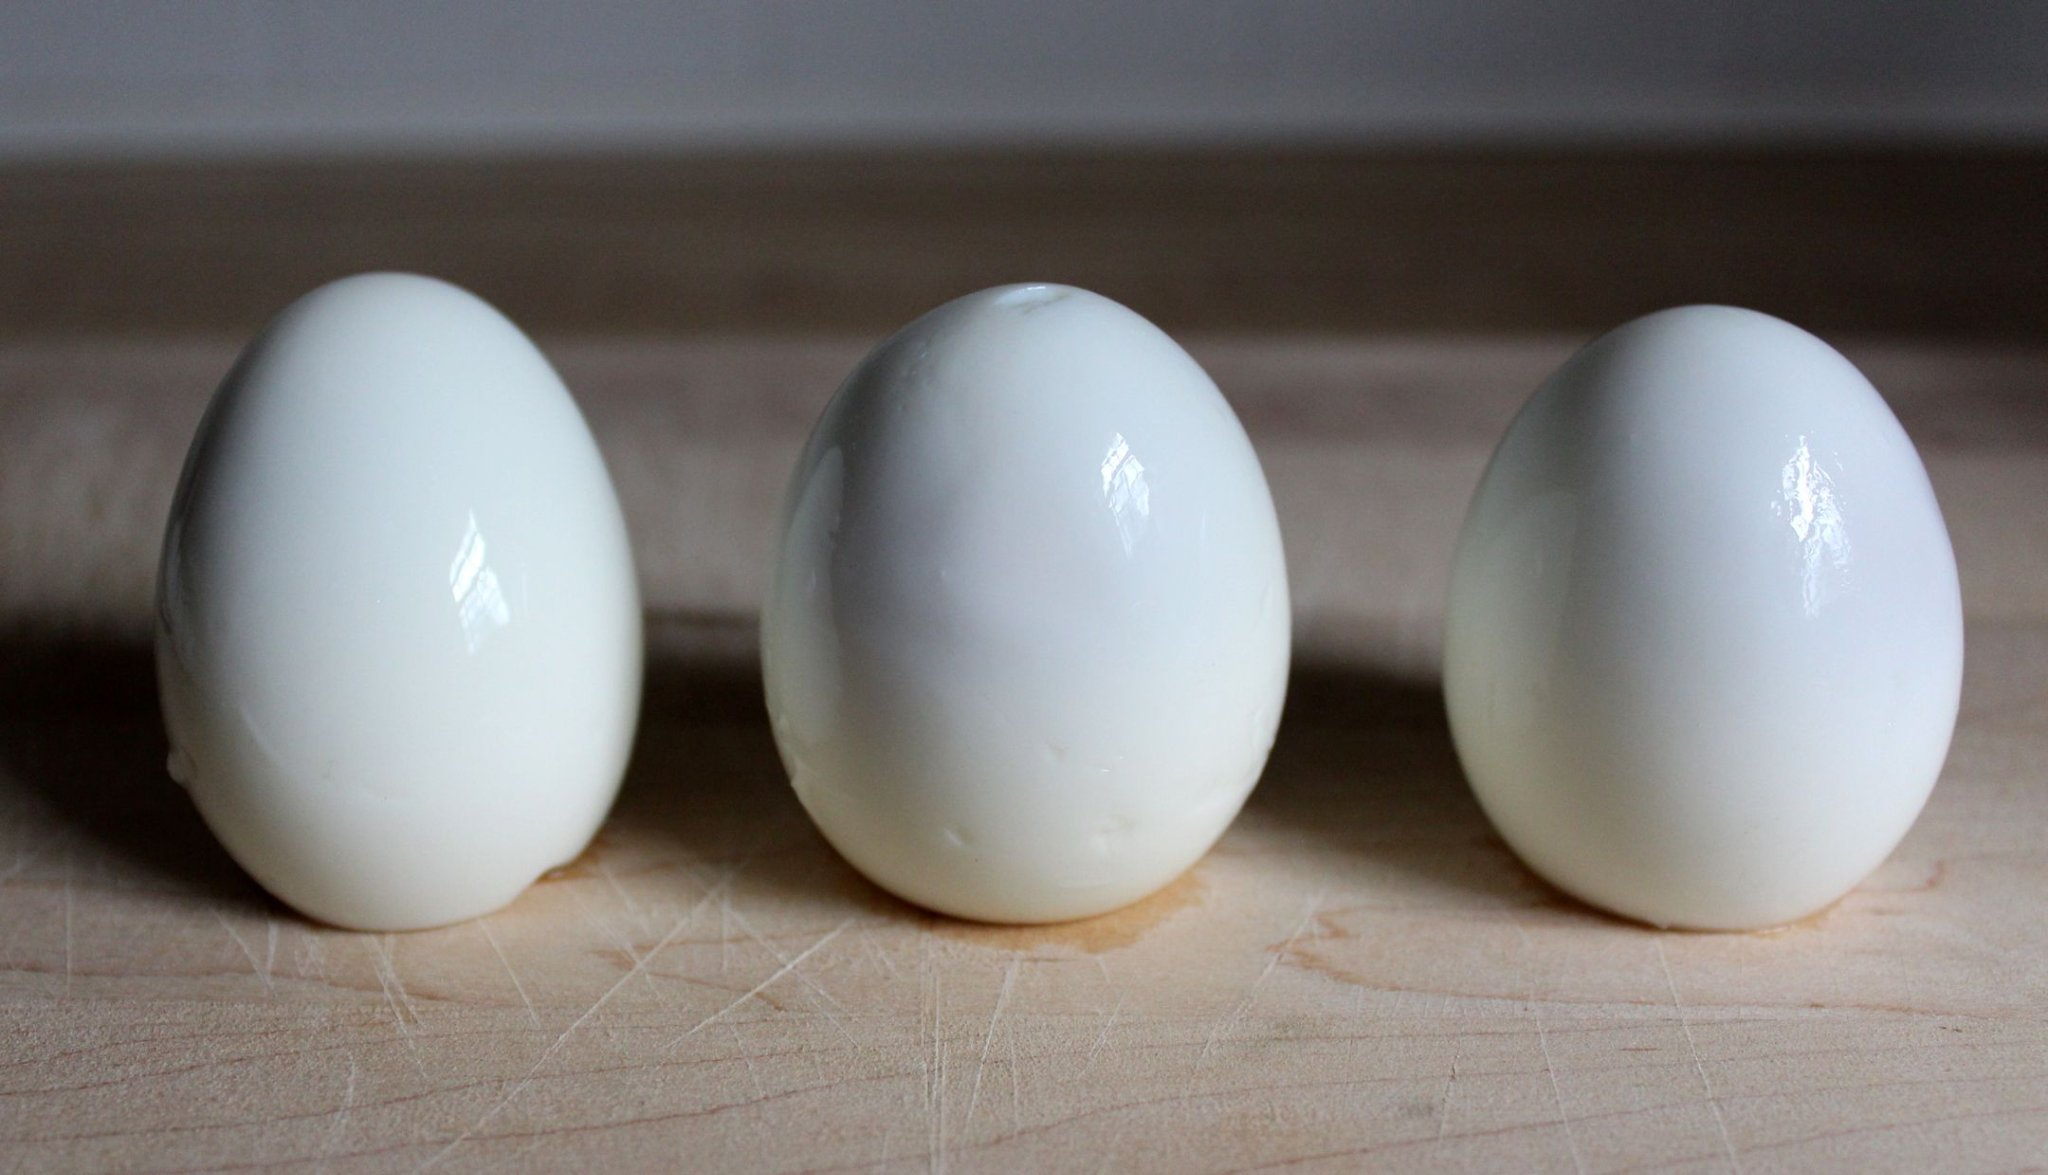 Use Vinegar To Peel Hard Boiled Eggs With Ease - Forkly